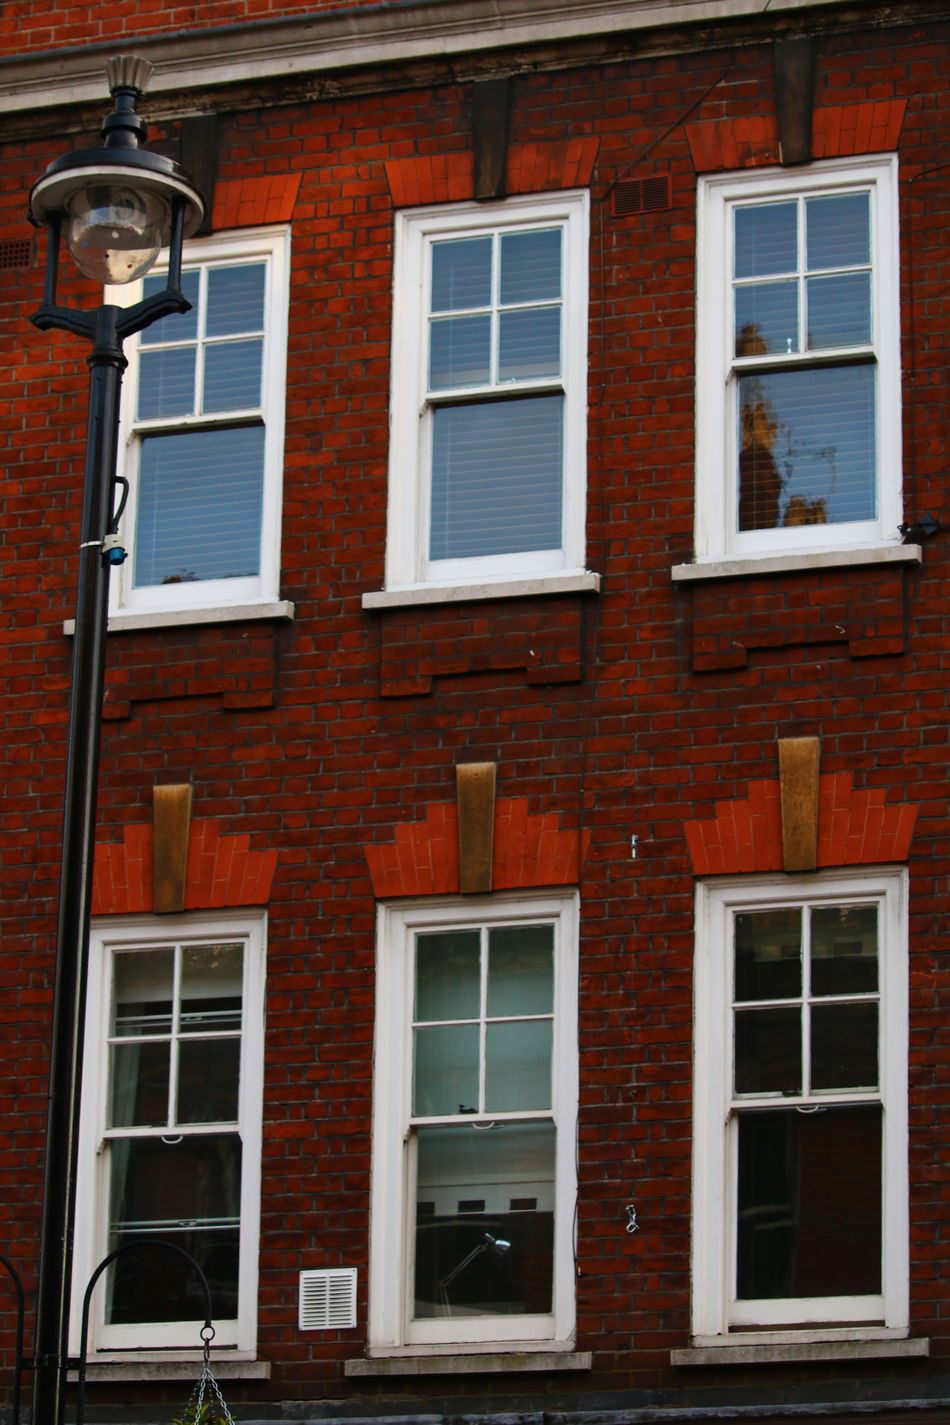 Windows Around The World Building Exterior Architecture Built Structure Residential Building Close-up Urban Exploration Geometric Shape Urban Exploring Urban Photography Close Up 3XSPUnity Eyem Best Shots Low Angle View Street Light Lamp Lamp Post Lamp Post Photography Façade Facades Brick Work